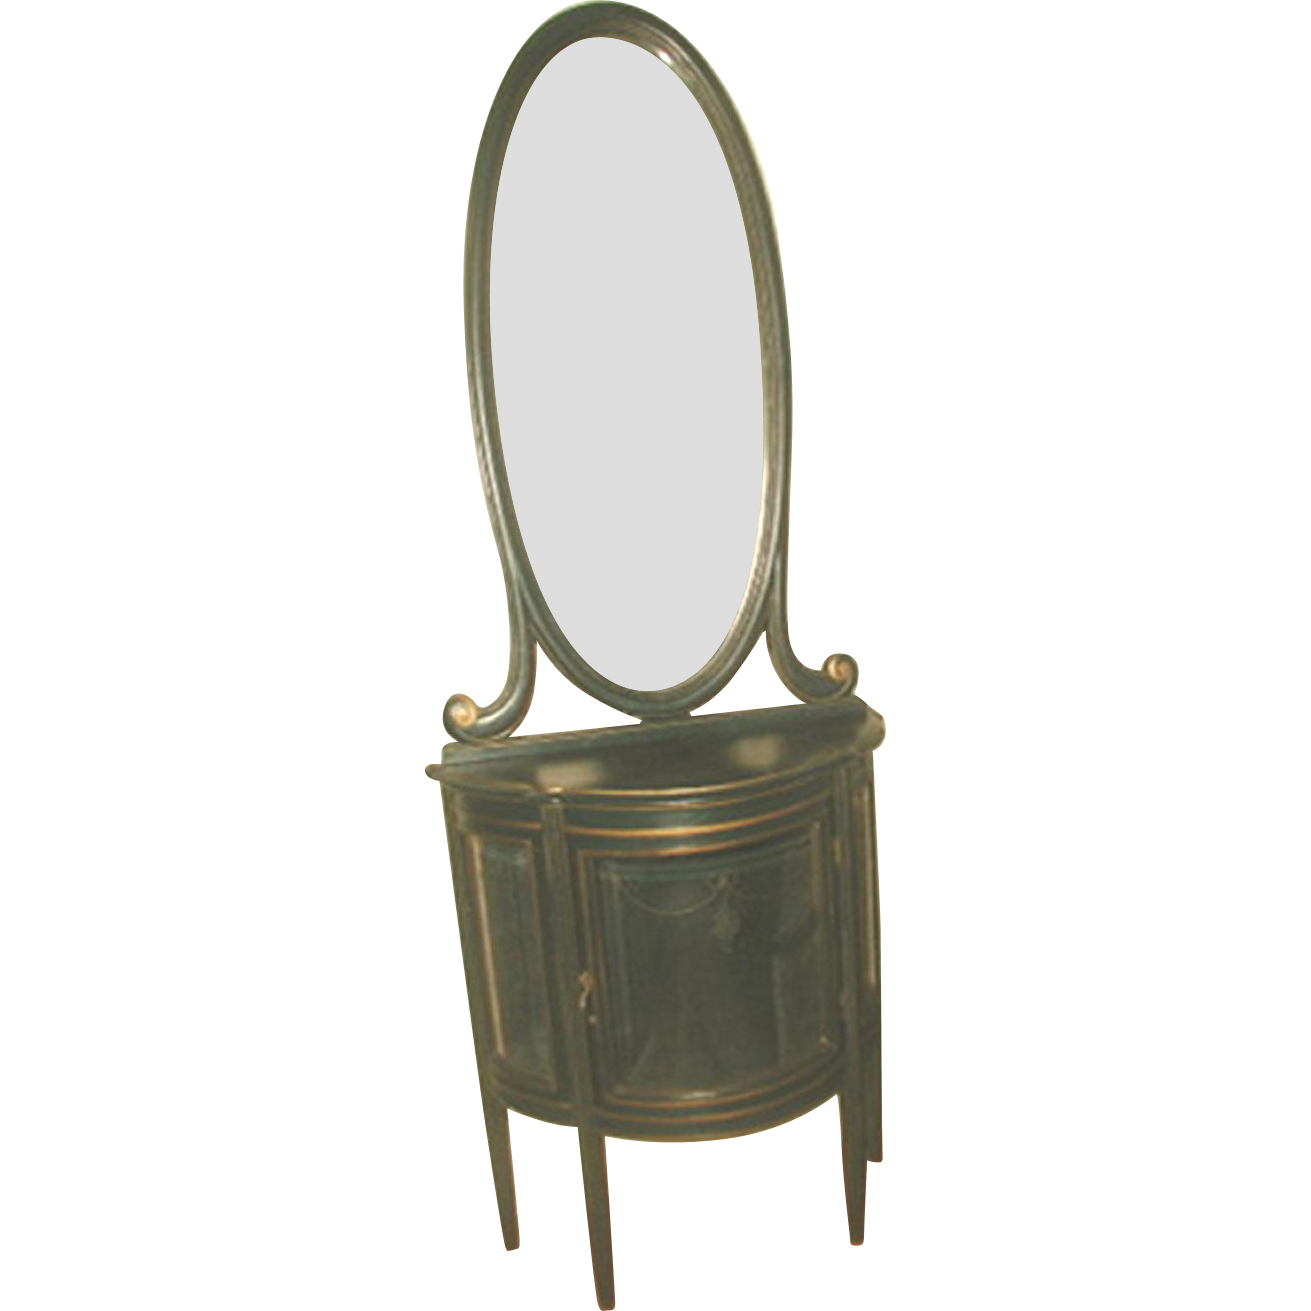 Italian China And Mirror Etched 18th Century Parlor